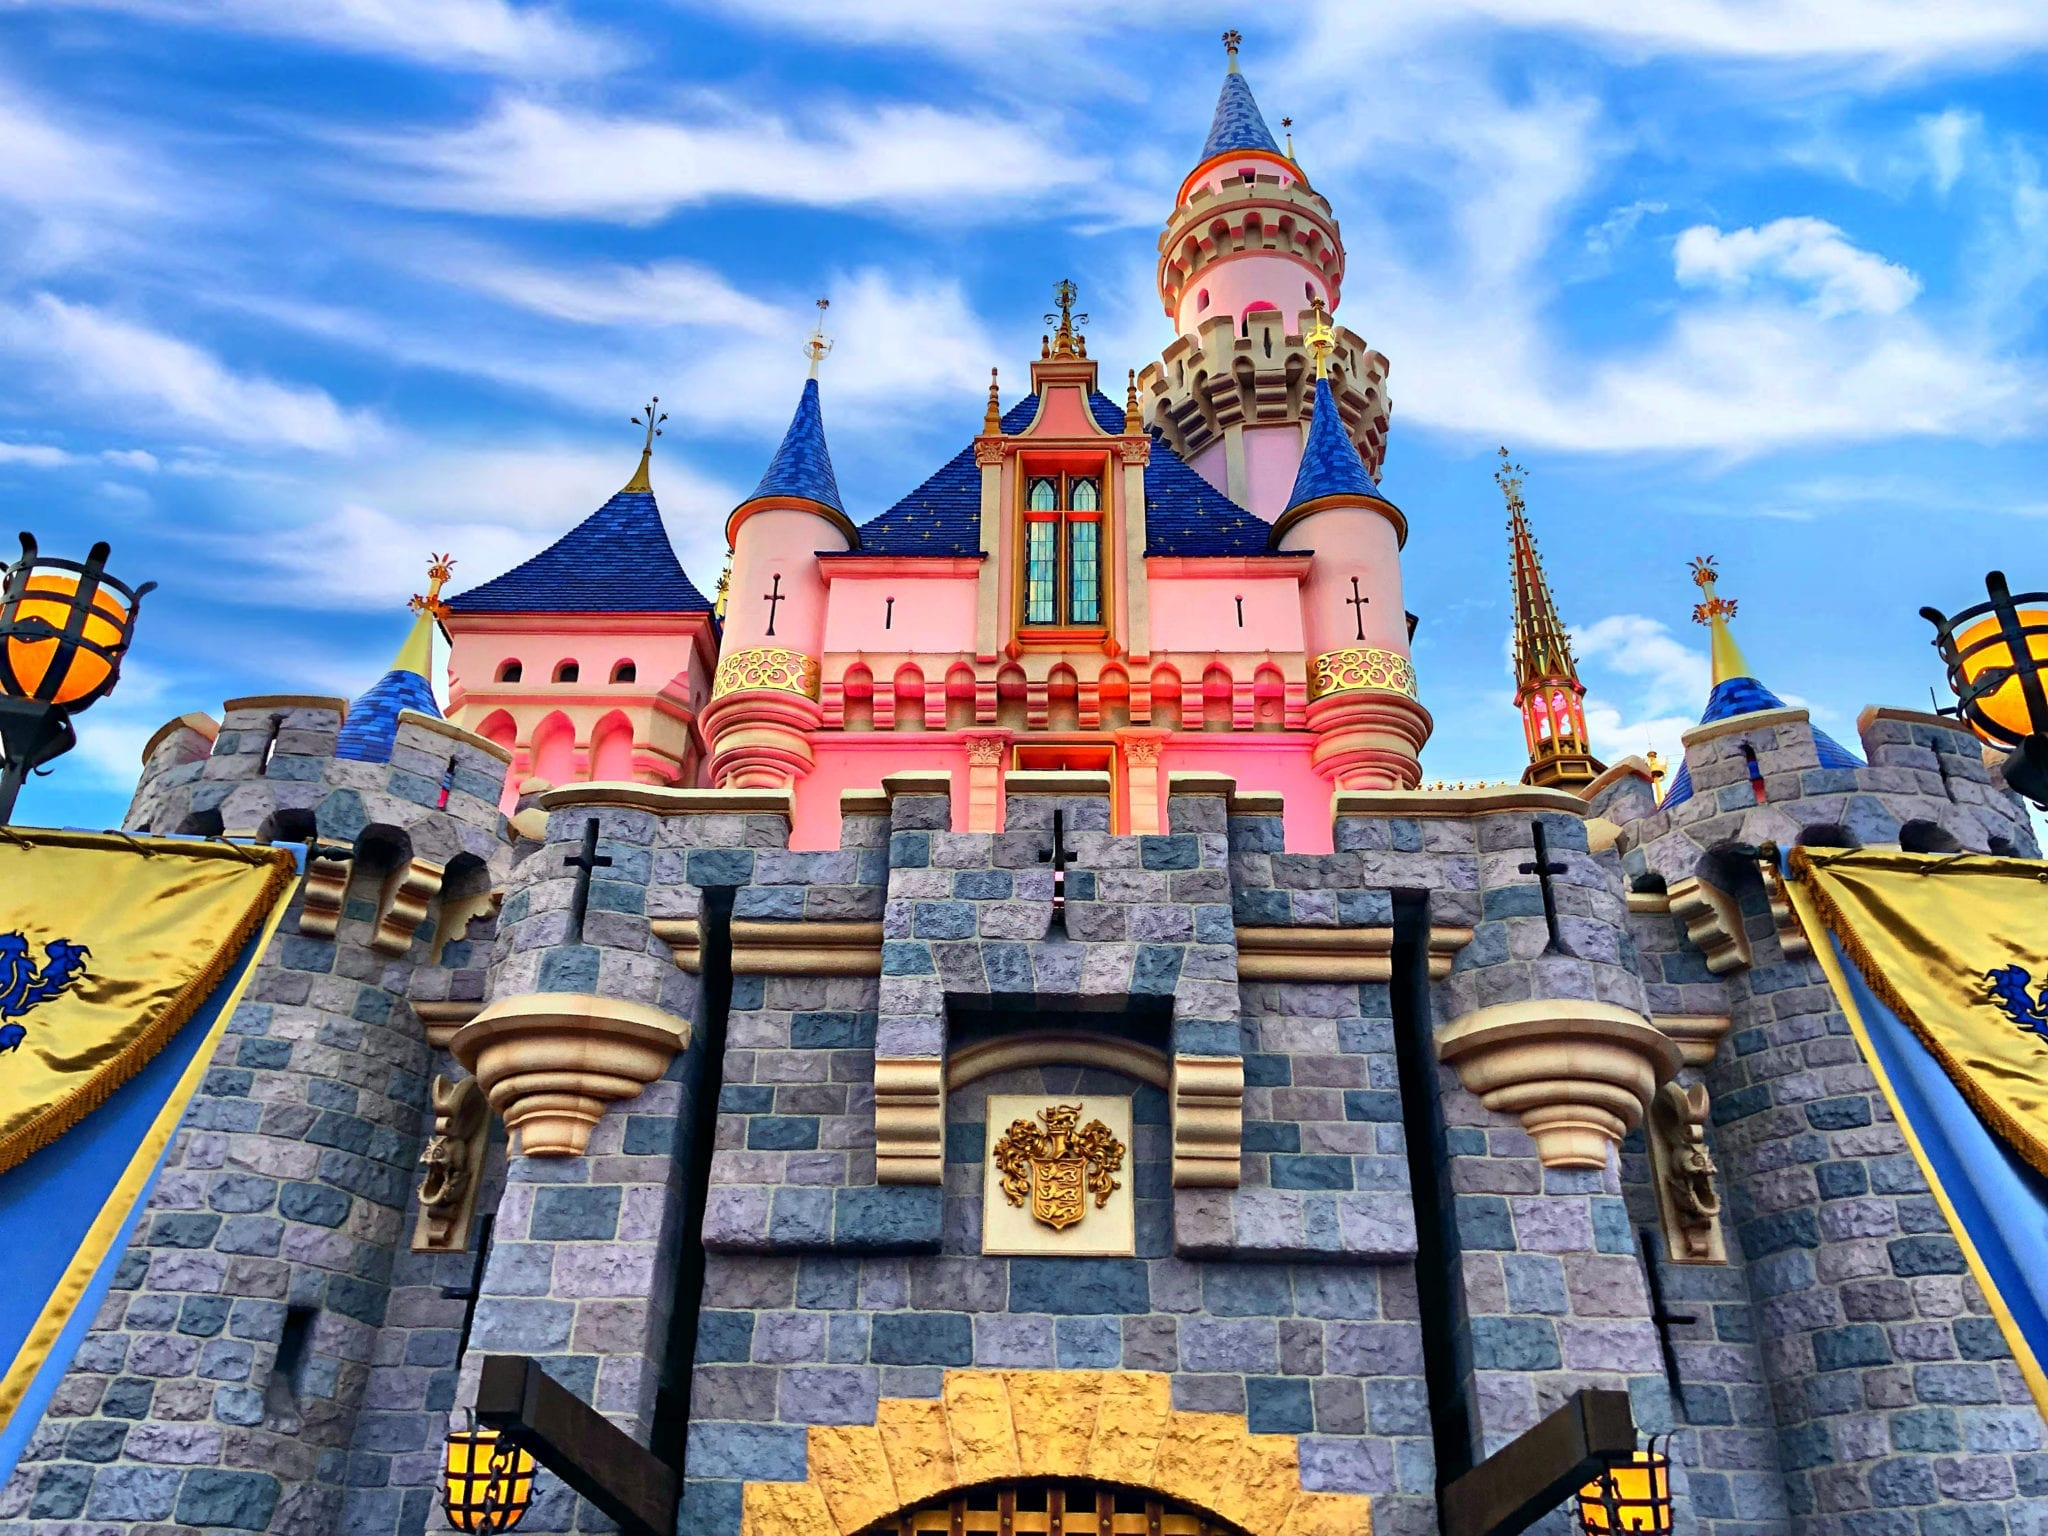 Disneyland To Launch Park Pass Reservation System April 12th